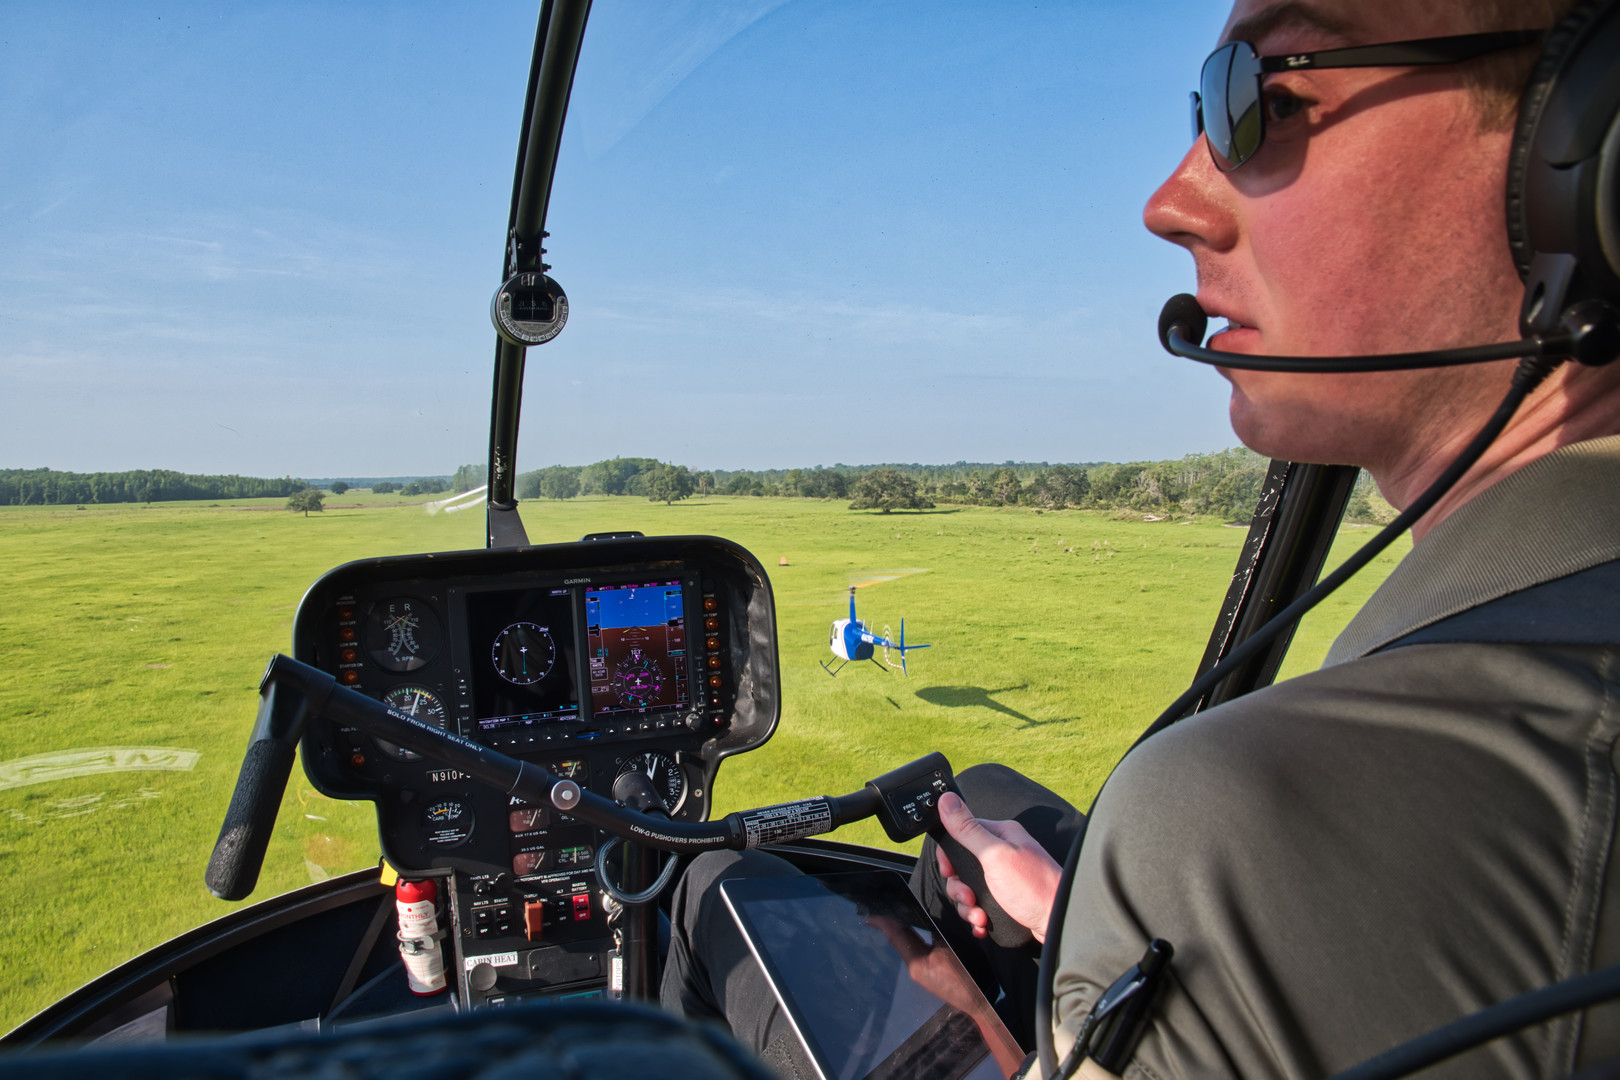 Flying Airplanes with USATS